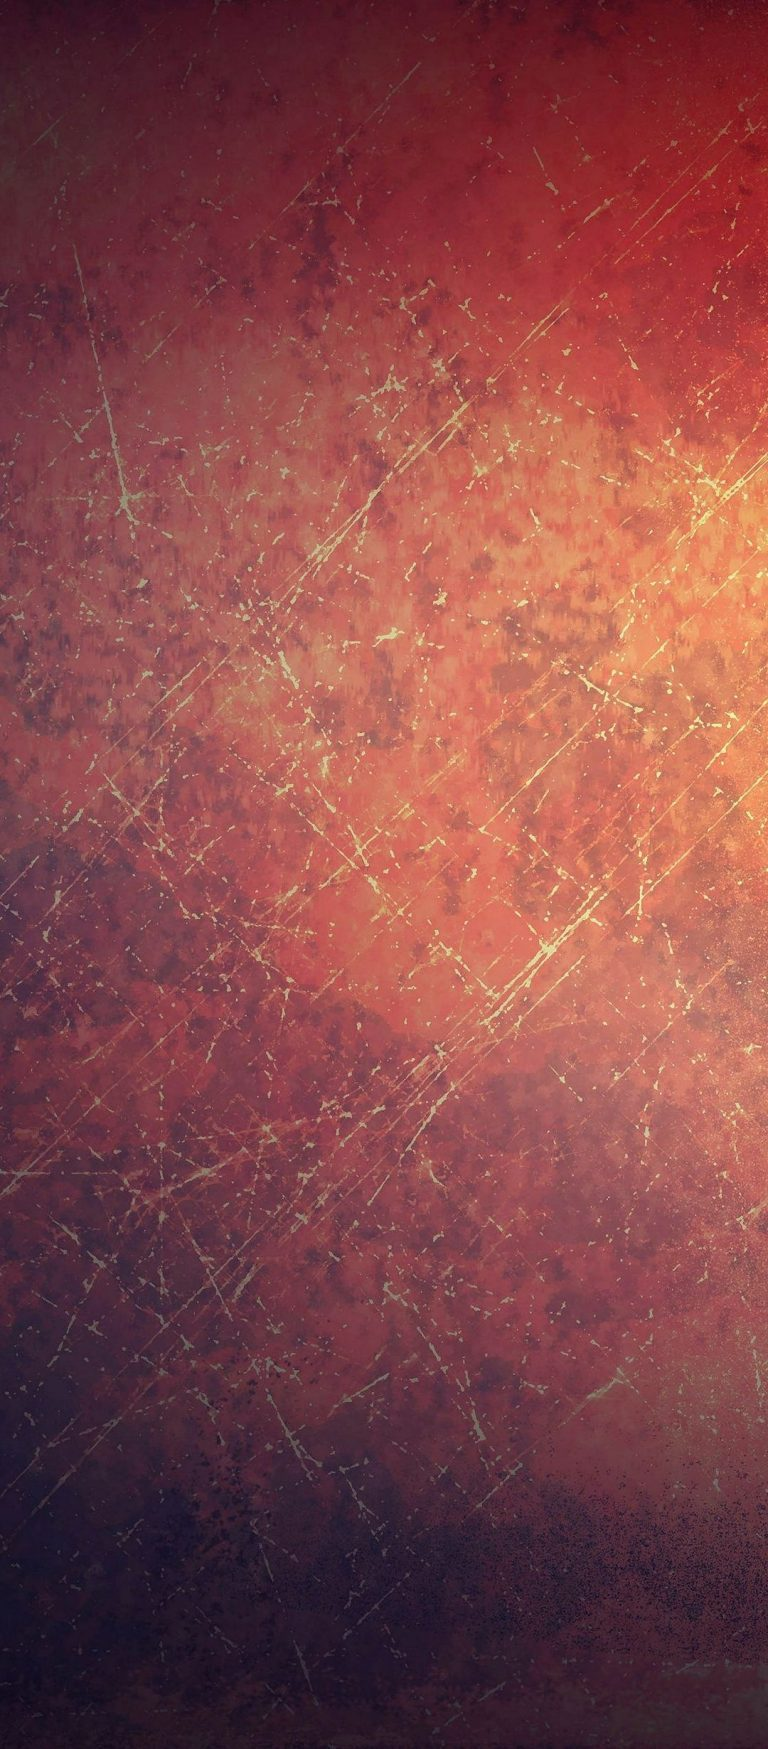 Surface Texture Stains Background 1080x2460 768x1749